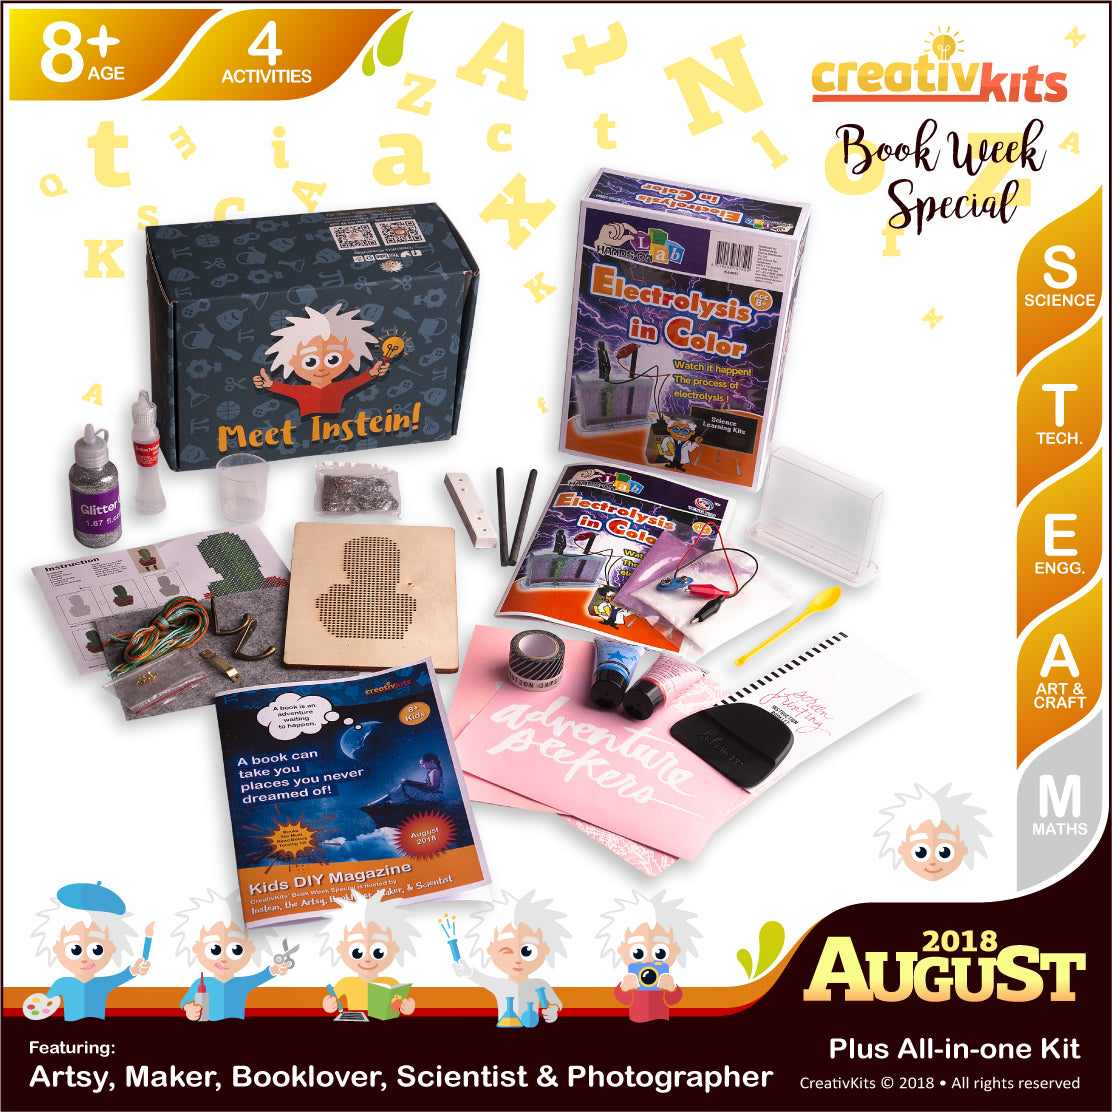 Holographic Slime, Screen Printing, Electrolysis and DIY Key Holder | August Plus Kit | Age 8+